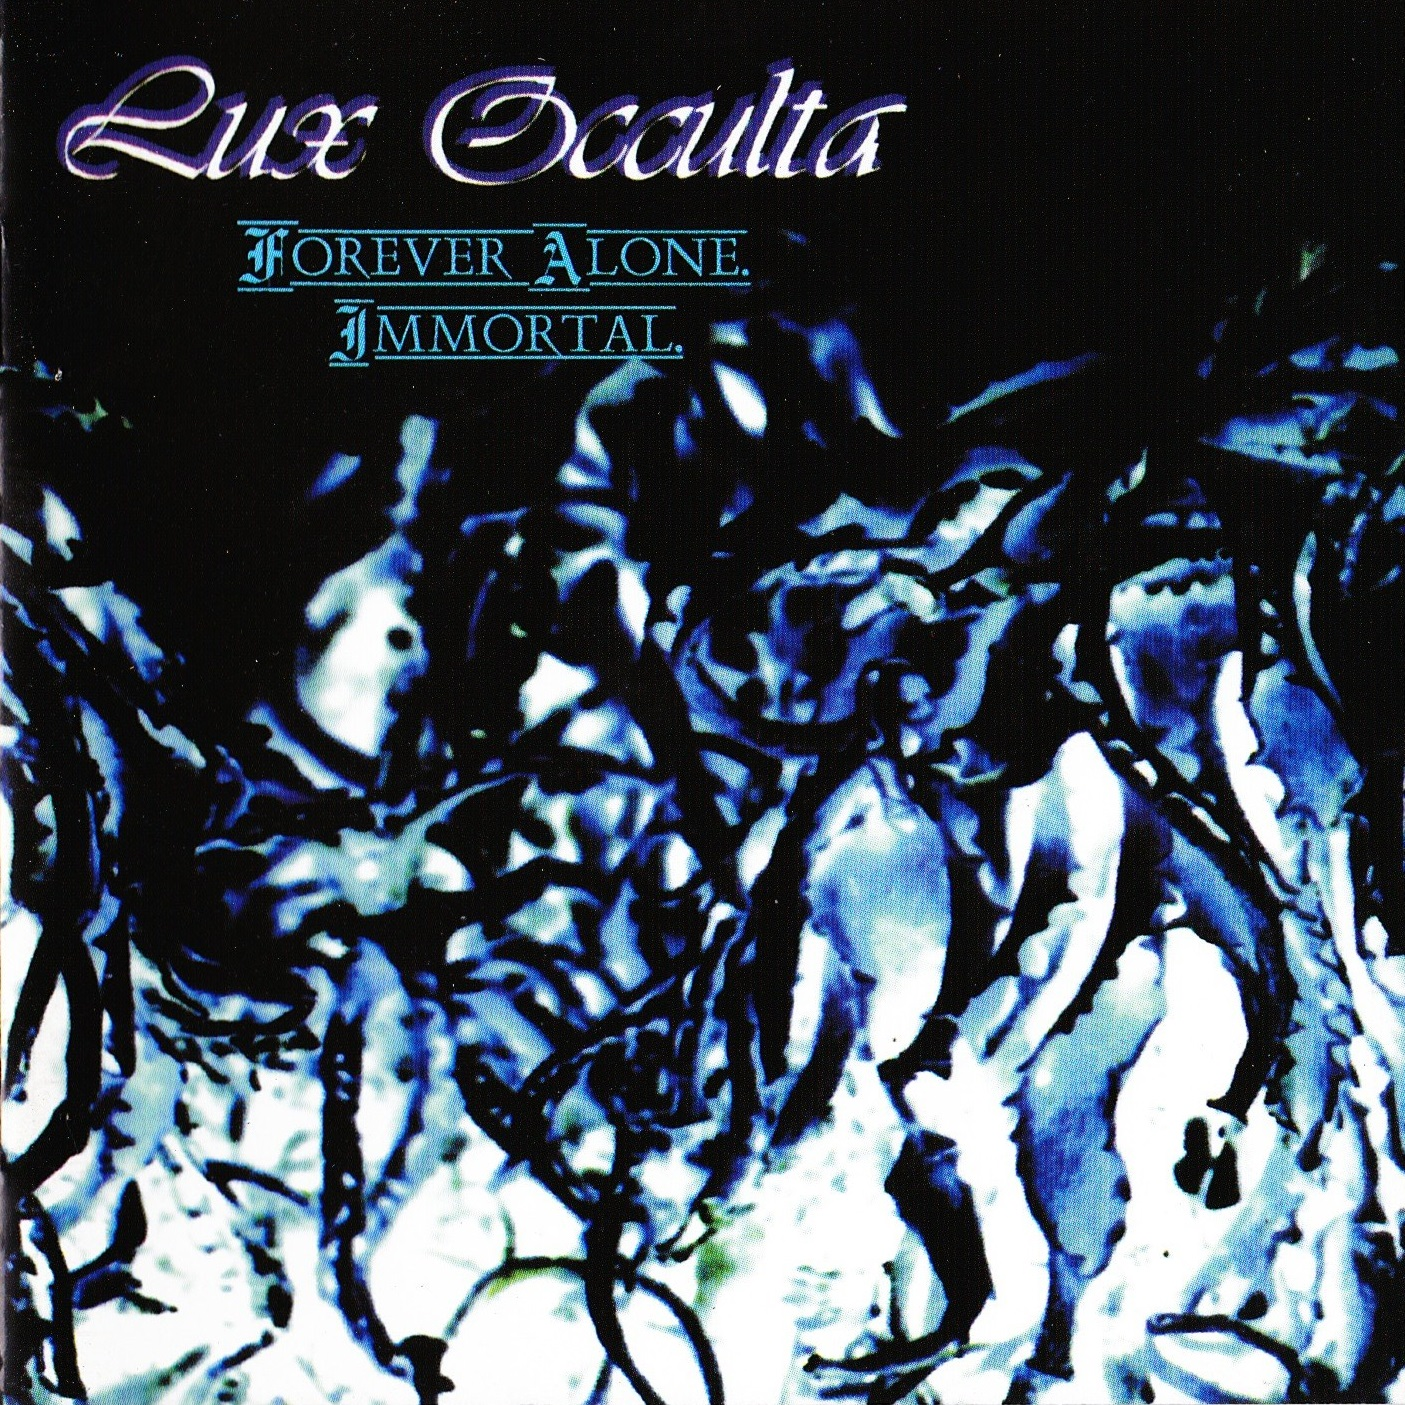 Lux Occulta — Forever Alone. Immortal (1996)